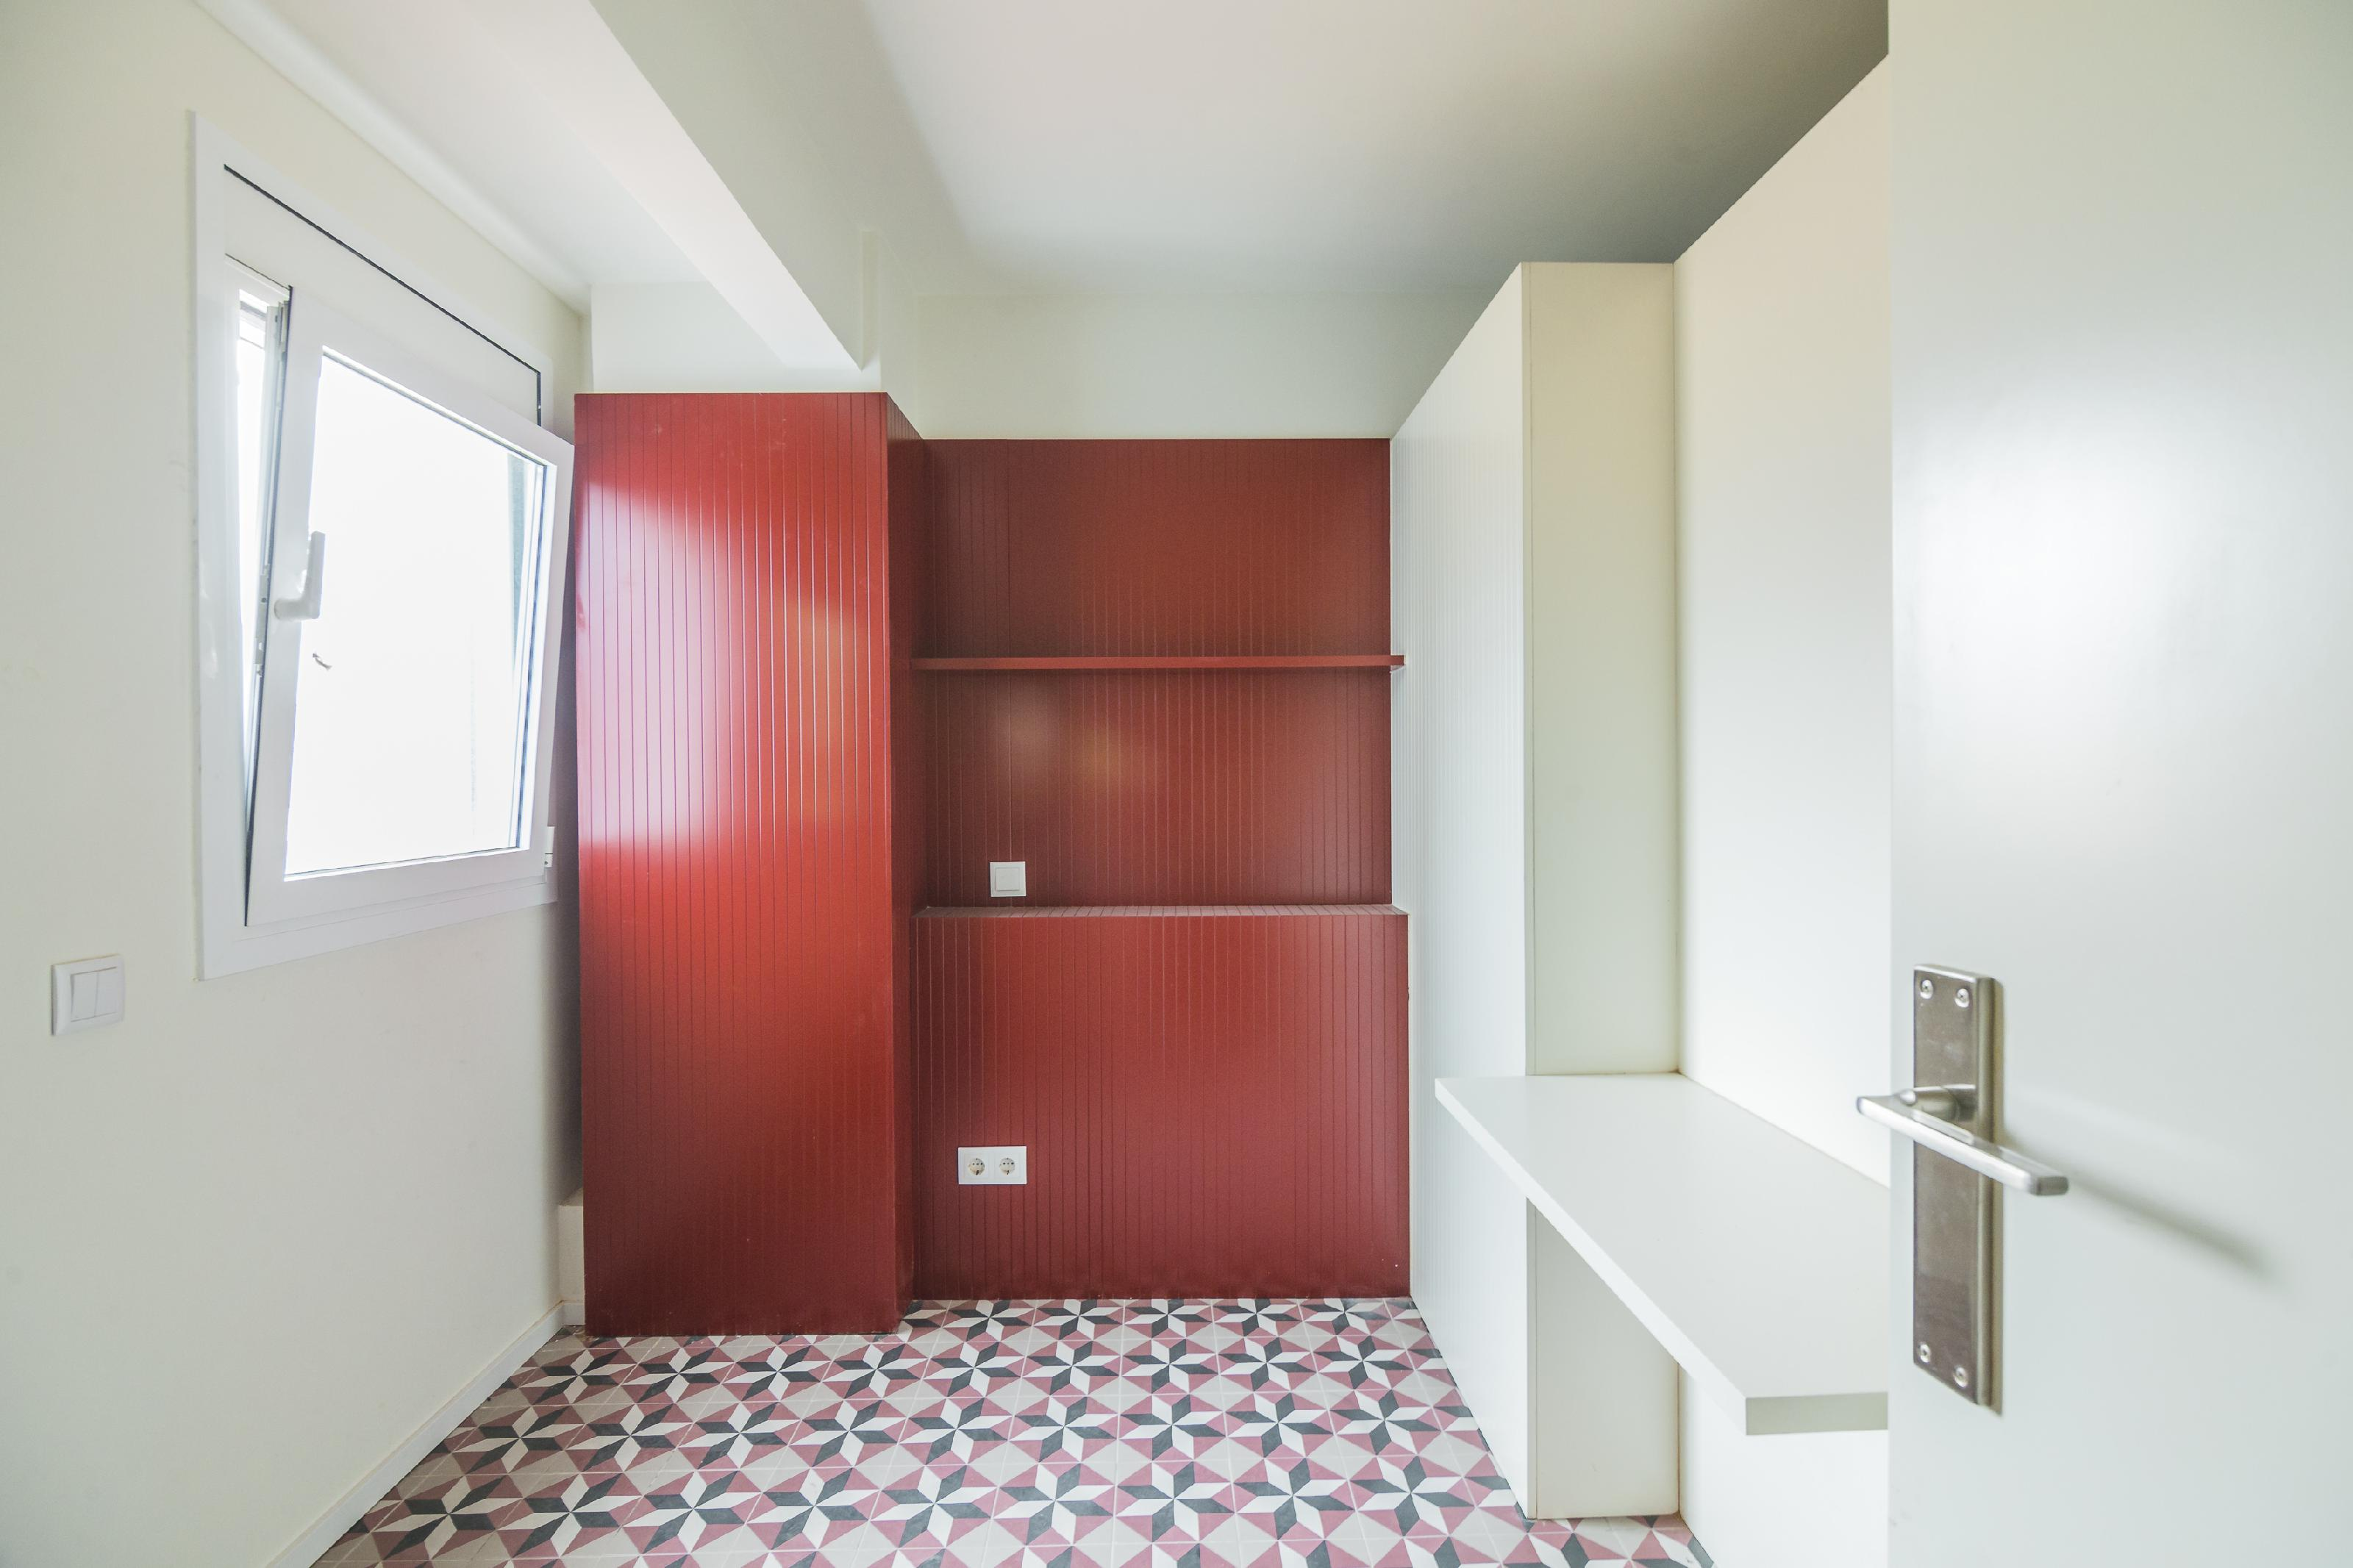 237520 Flat for sale in Ciutat Vella, St. Pere St. Caterina and La Ribera 16